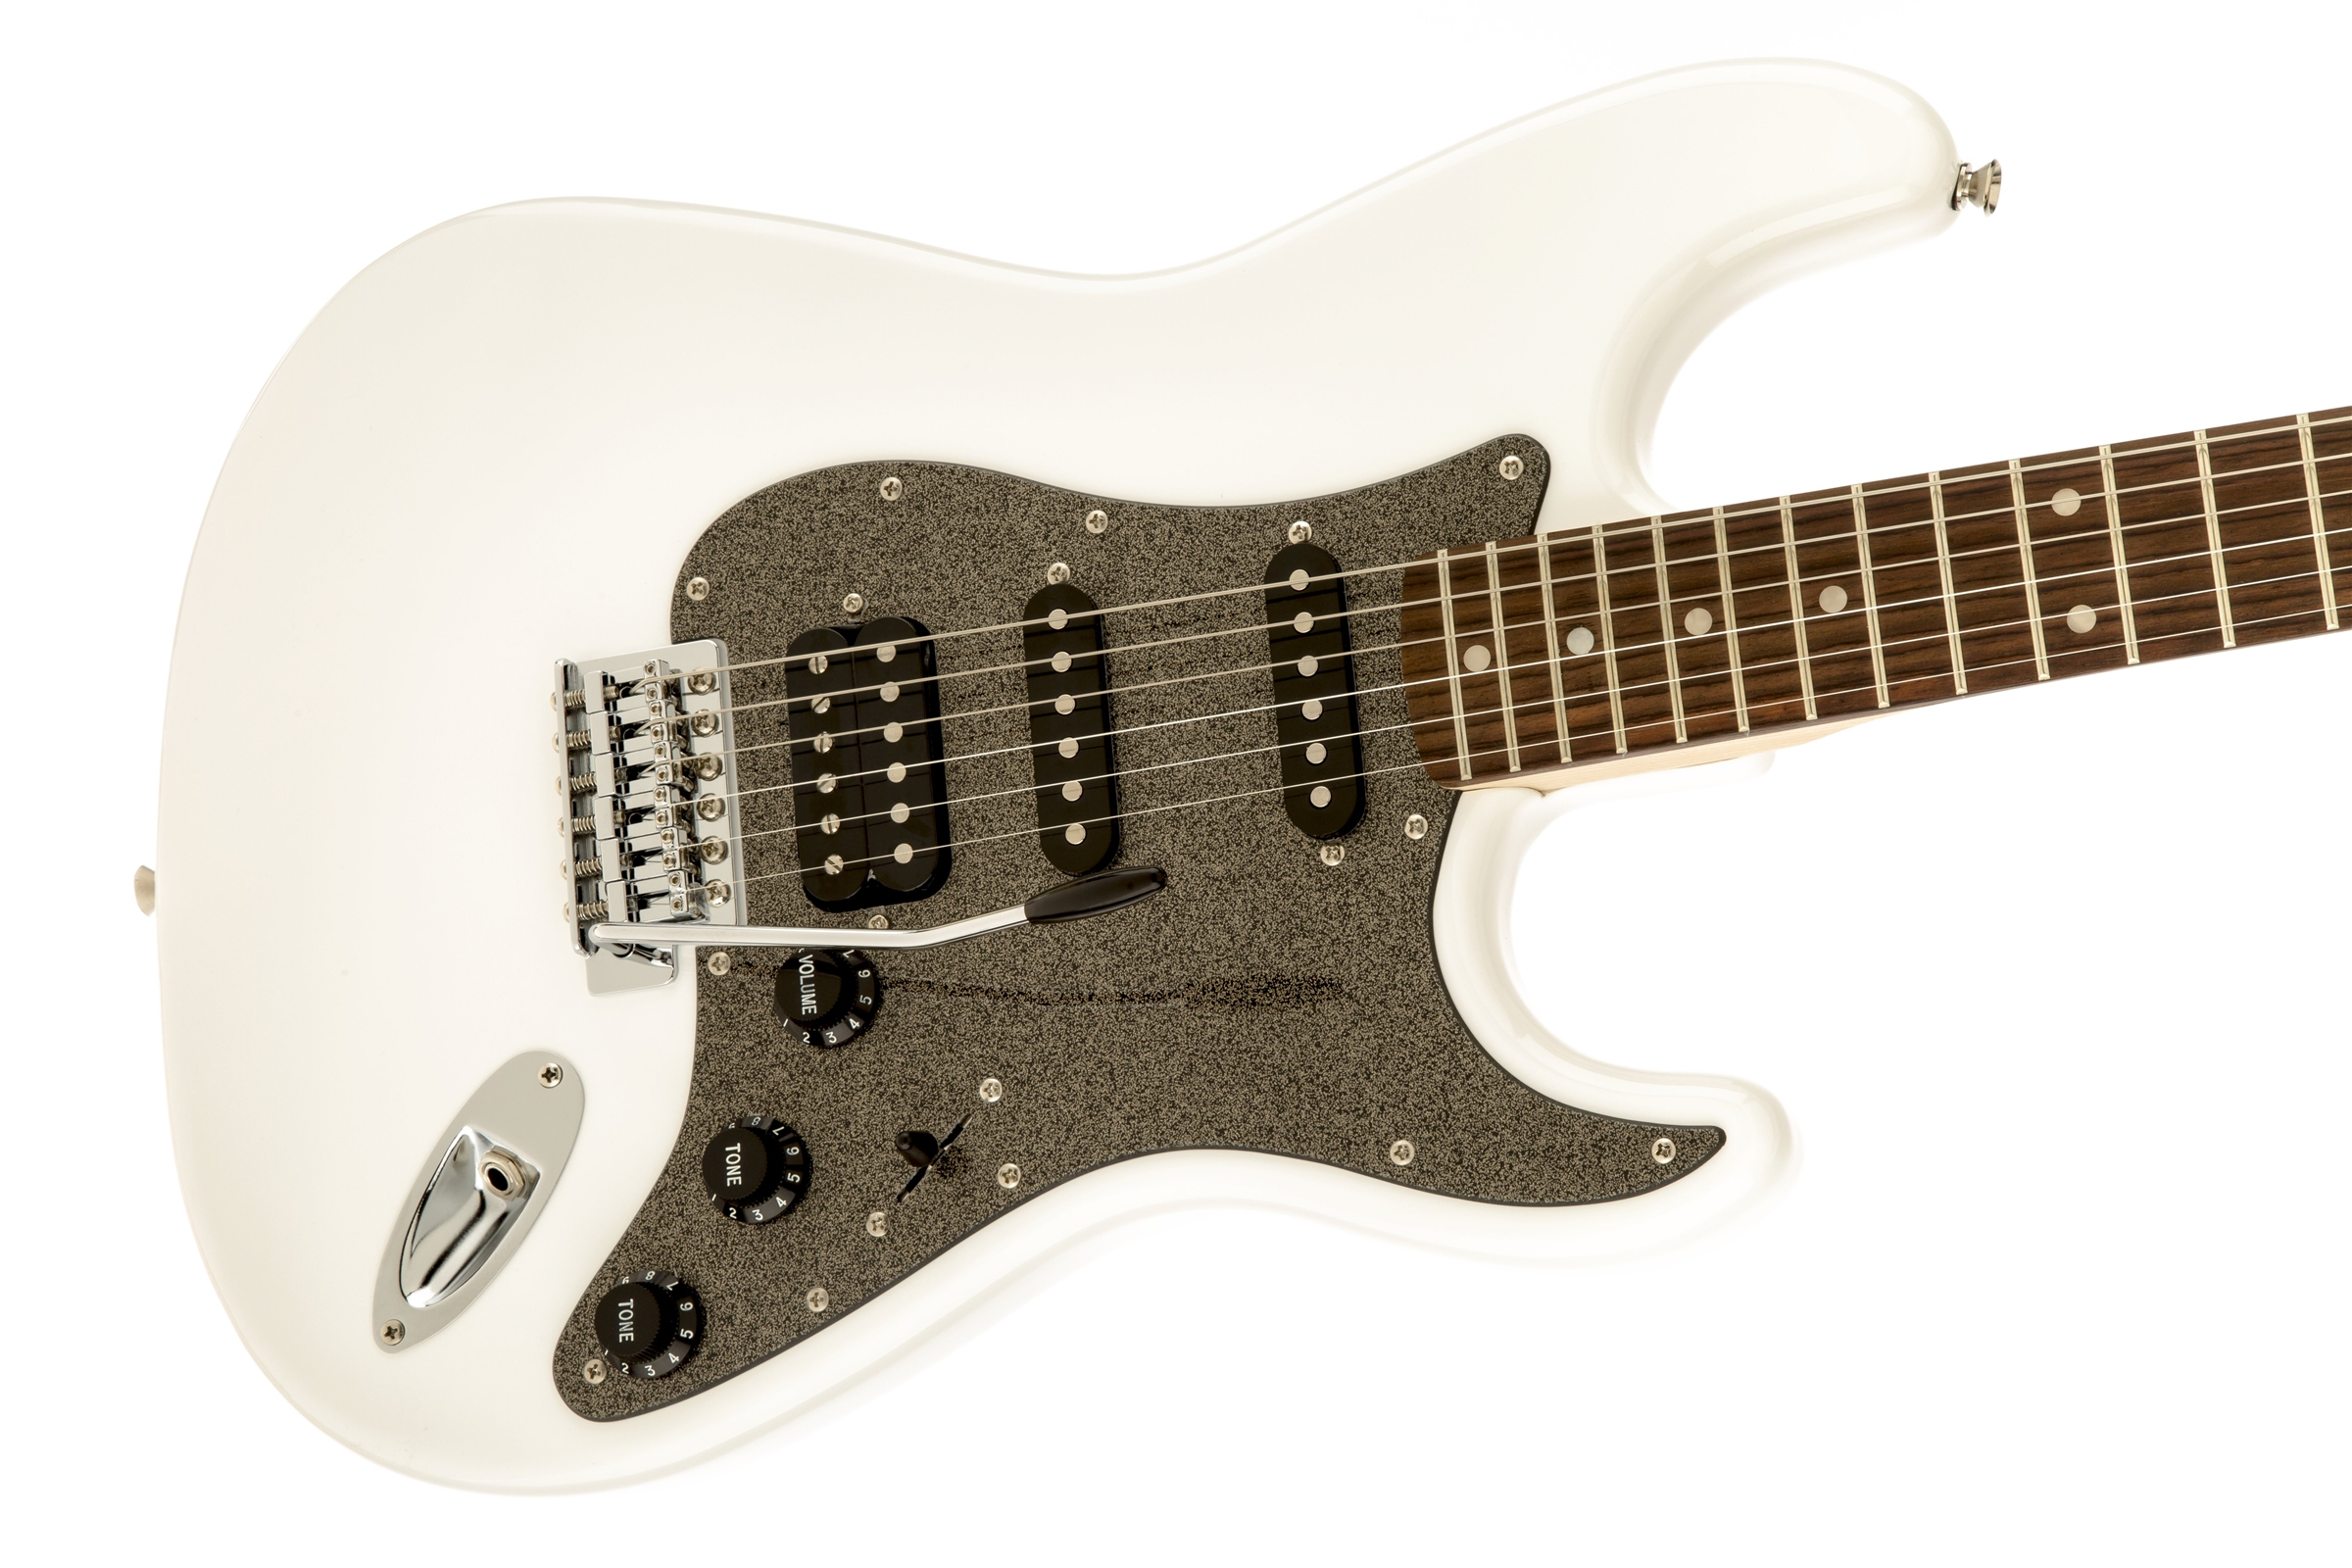 squier affinity series stratocaster hss rosewood fingerboard olympic white squier. Black Bedroom Furniture Sets. Home Design Ideas